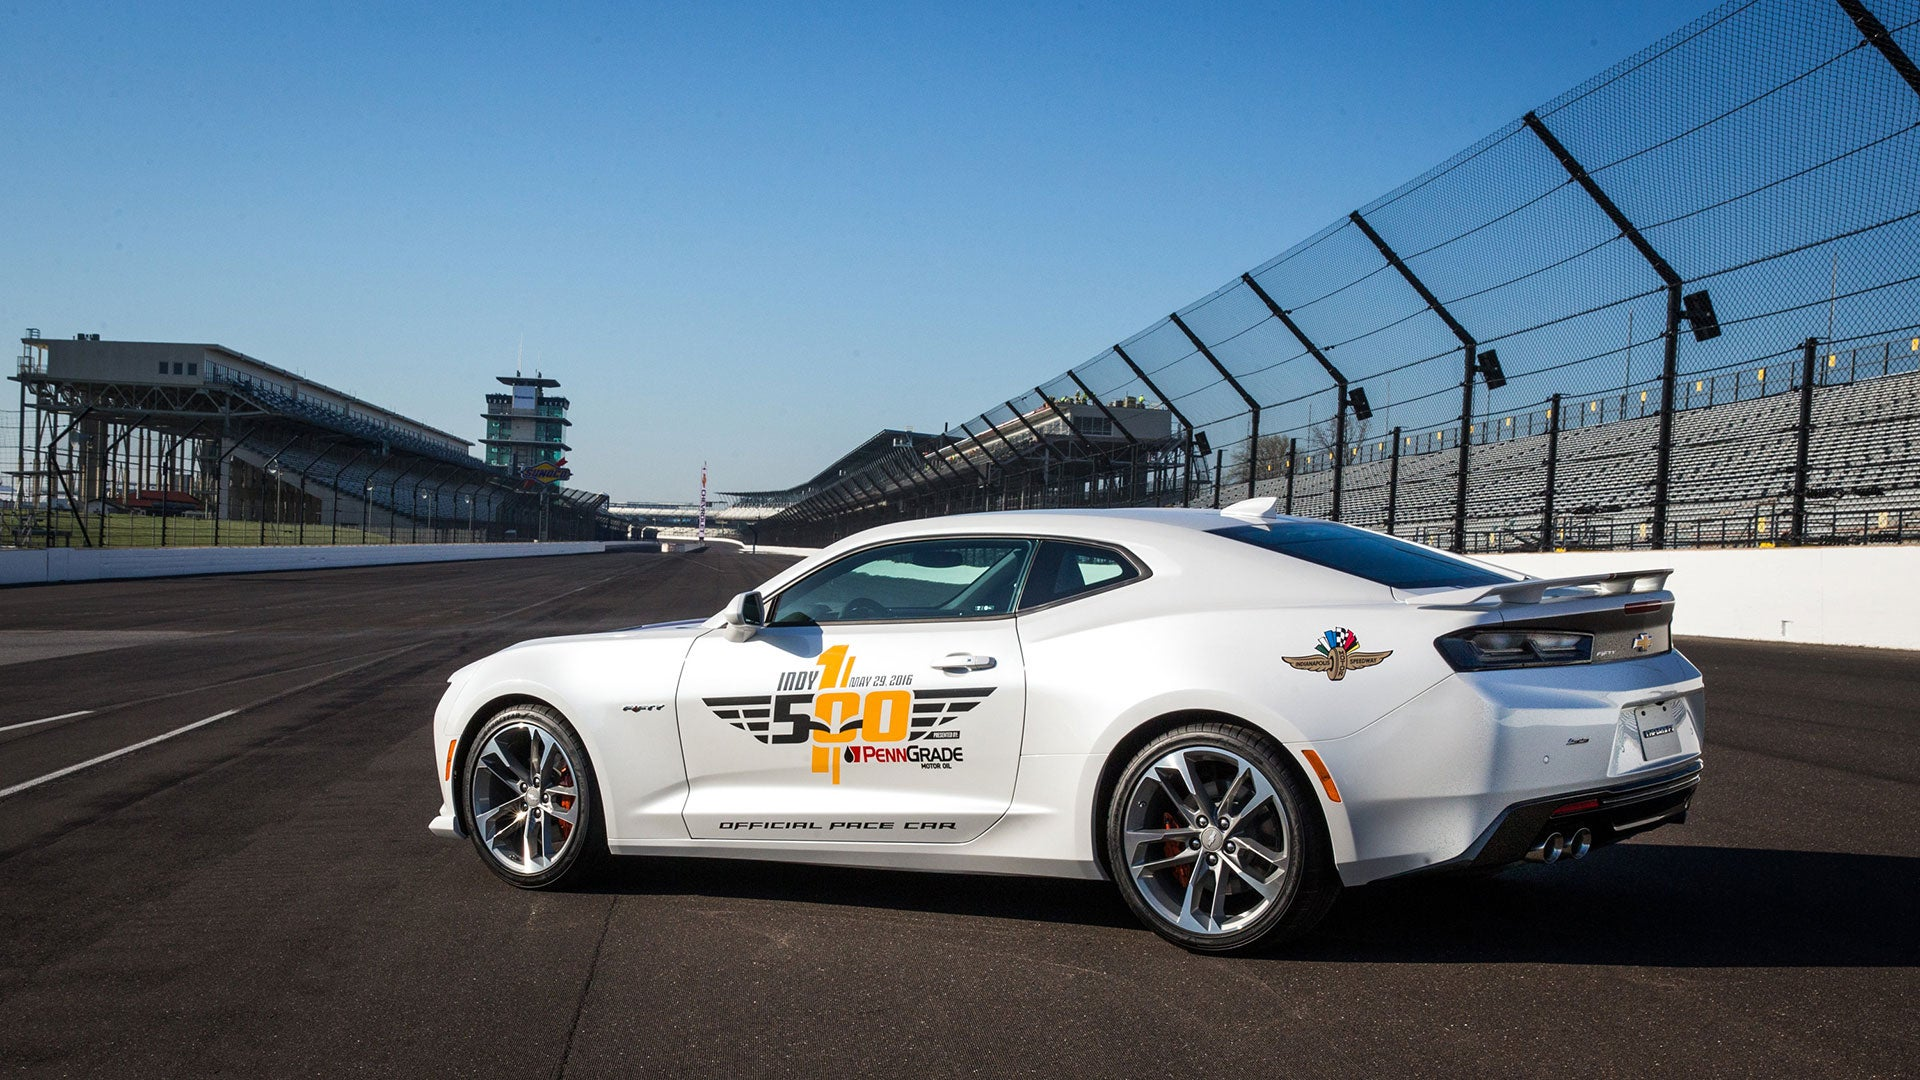 Indy 500 Pace Car